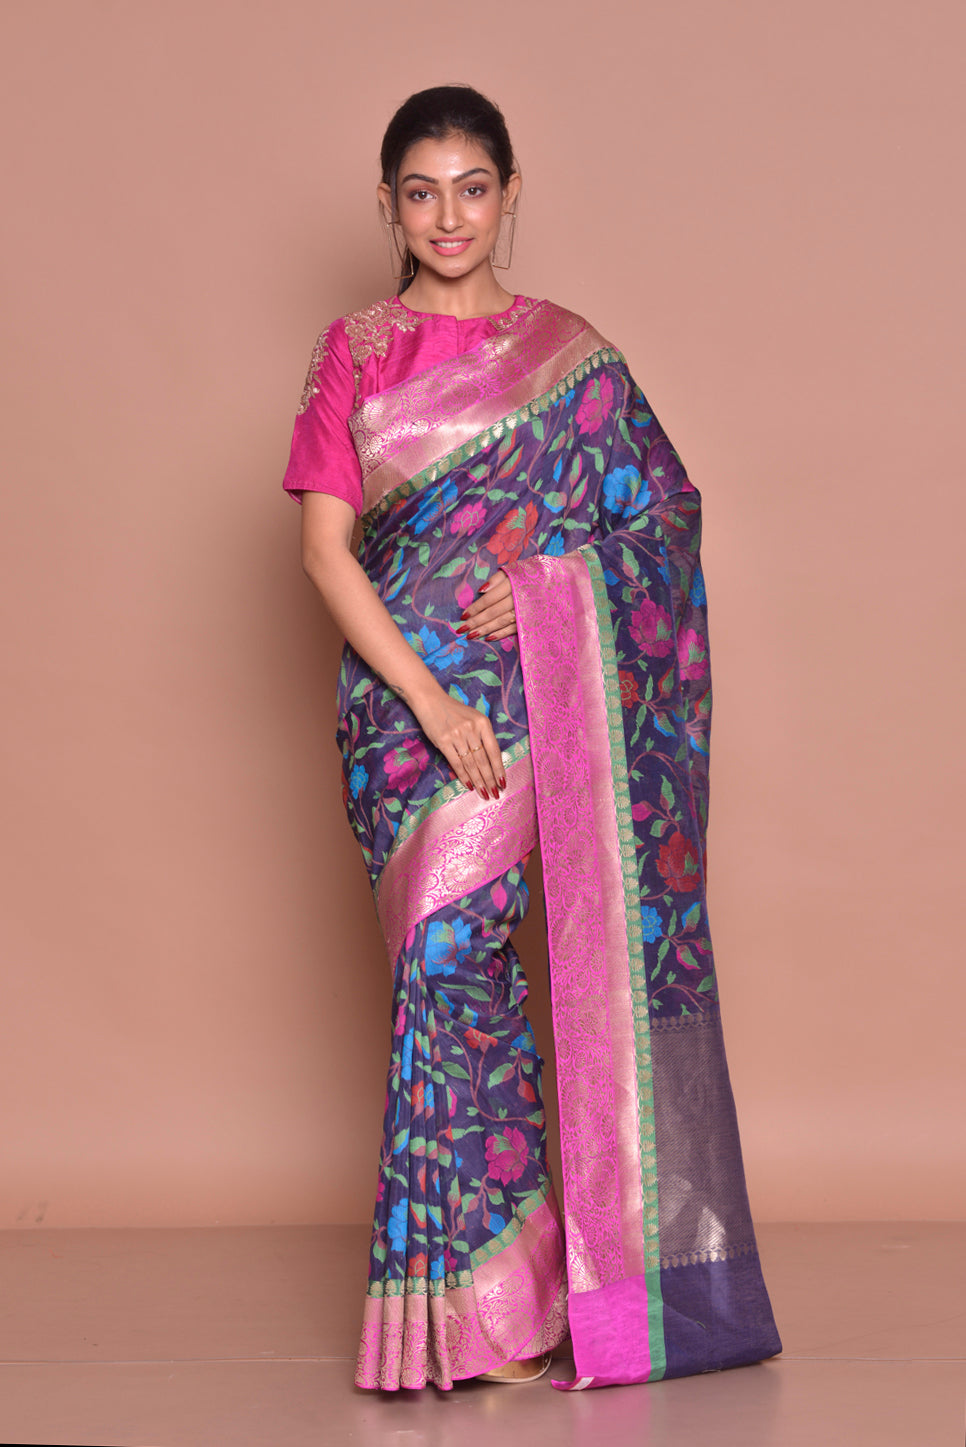 Buy gorgeous blue floral jute Banarasi saree online in USA with zari border and pink embroidered saree blouse. Set ethnic fashion goals with exquisite designer sarees with blouse, Banarasi sarees, Kanchipuram saris from Pure Elegance Indian luxury clothing store in USA.-full view